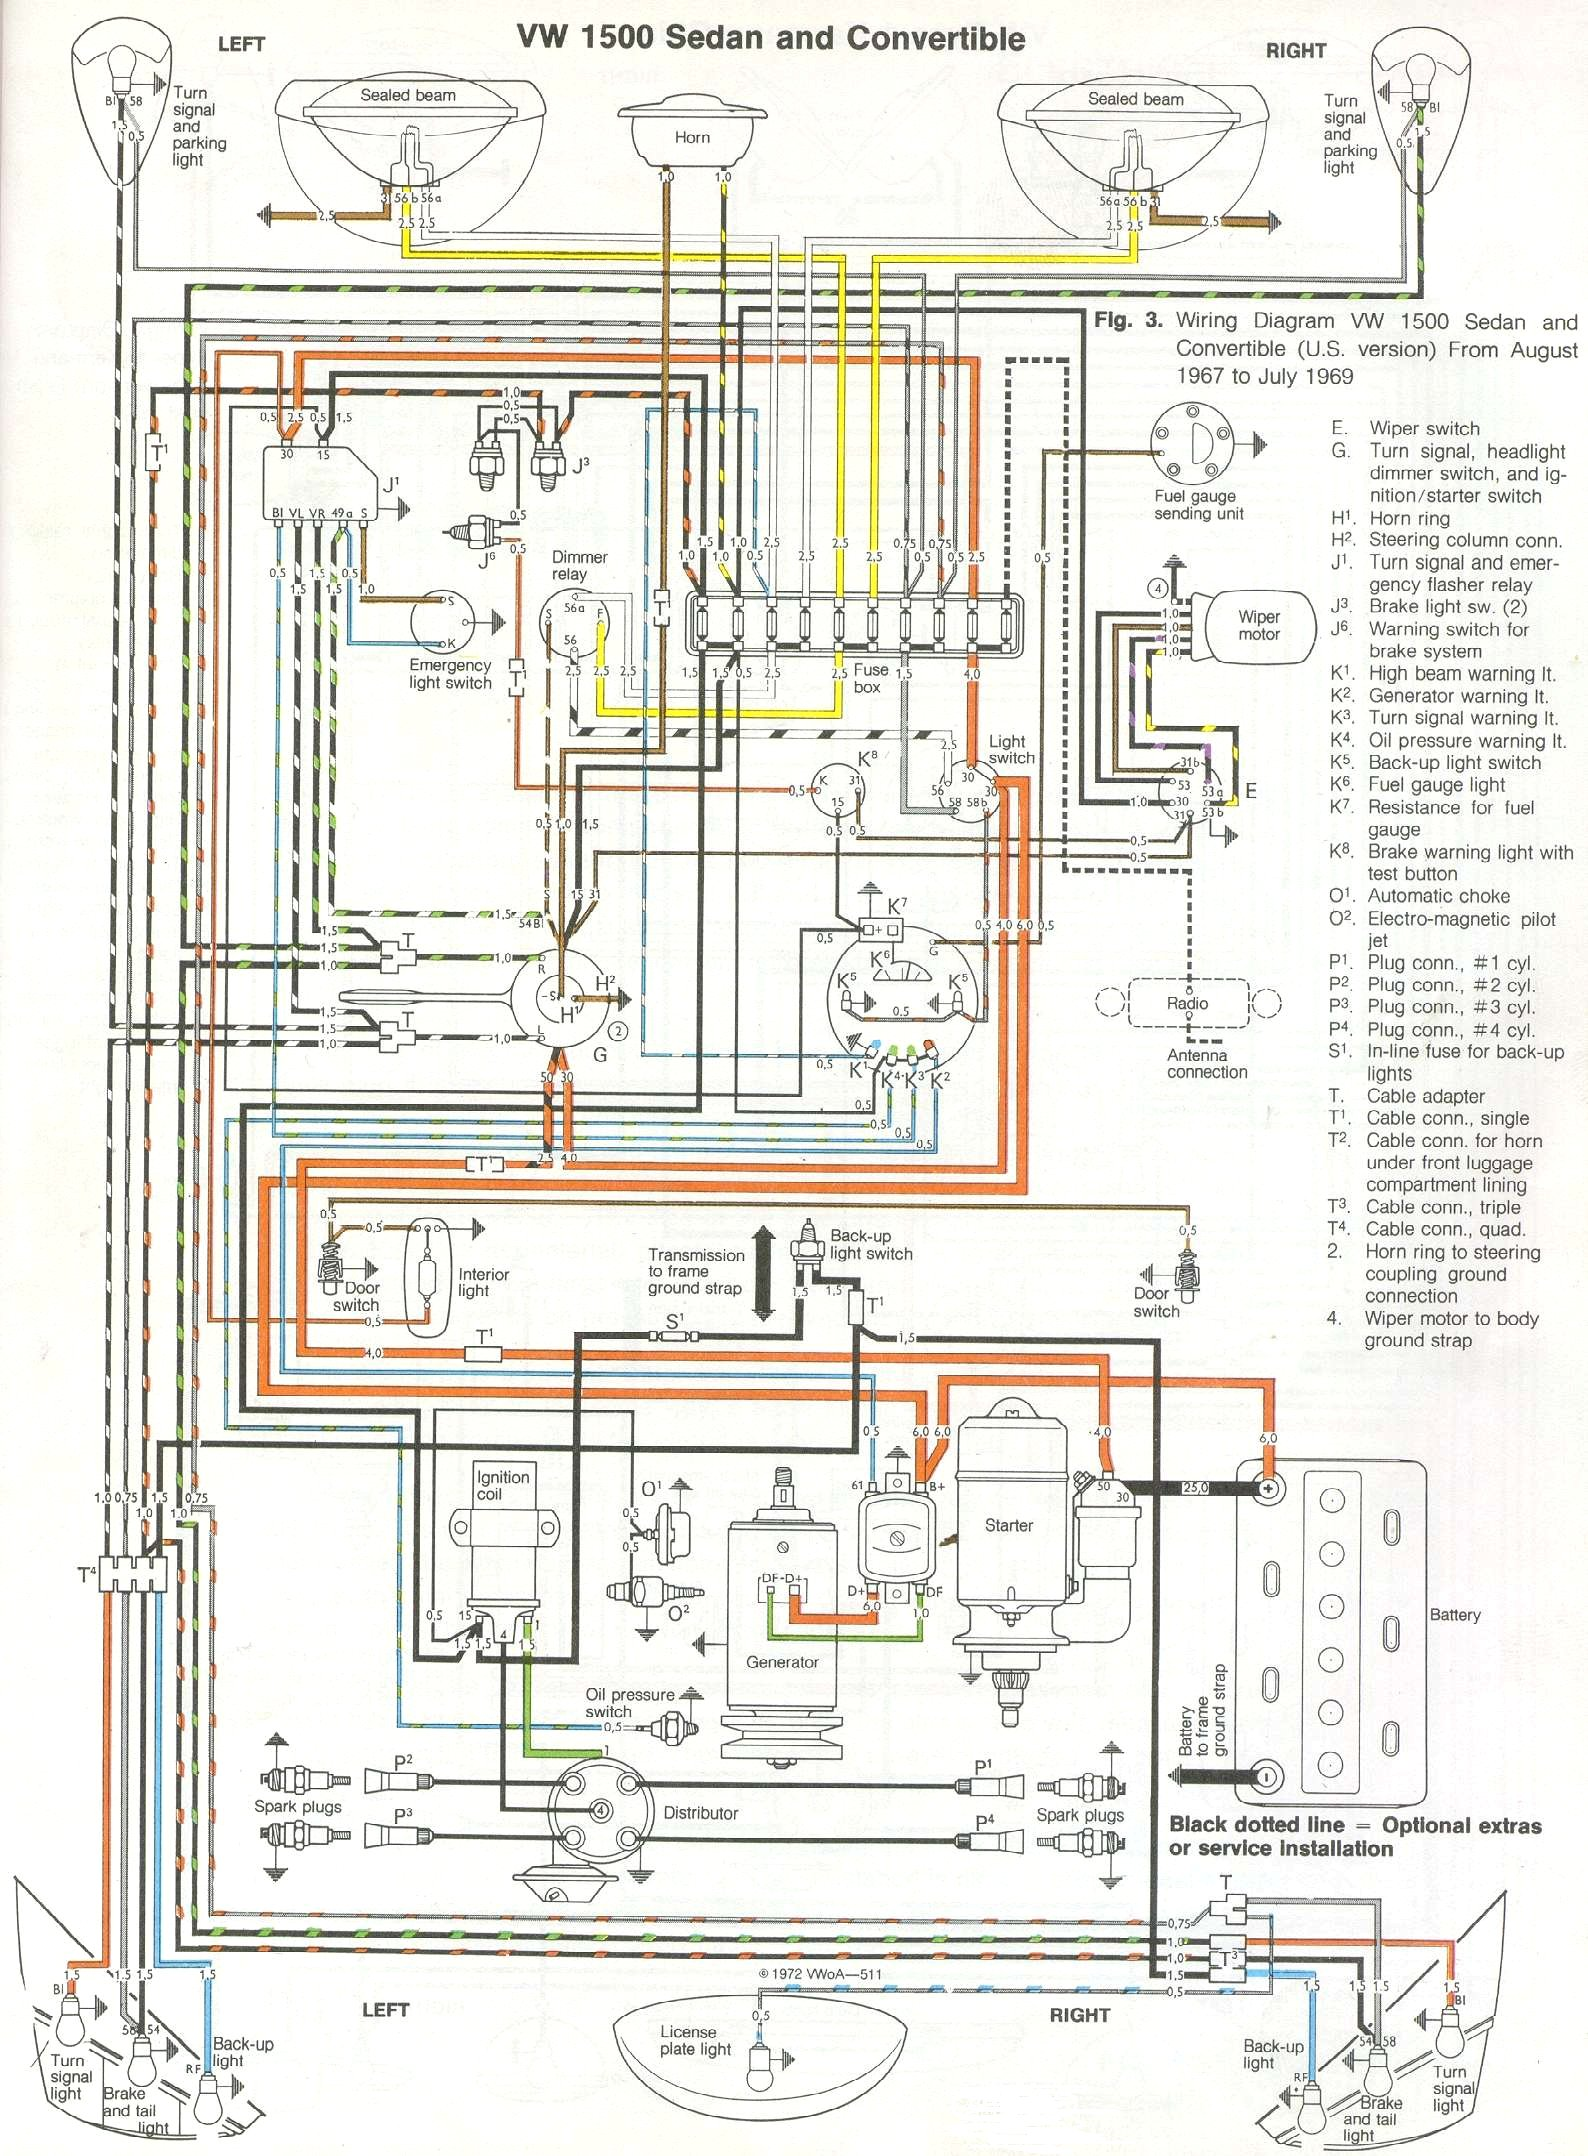 🏆 [DIAGRAM in Pictures Database] 72 Vw Super Beetle Wiring Diagram Just  Download or Read Wiring Diagram - CONN.IGGULDEN.FORUM.ONYXUM.COMComplete Diagram Picture Database - Onyxum.com